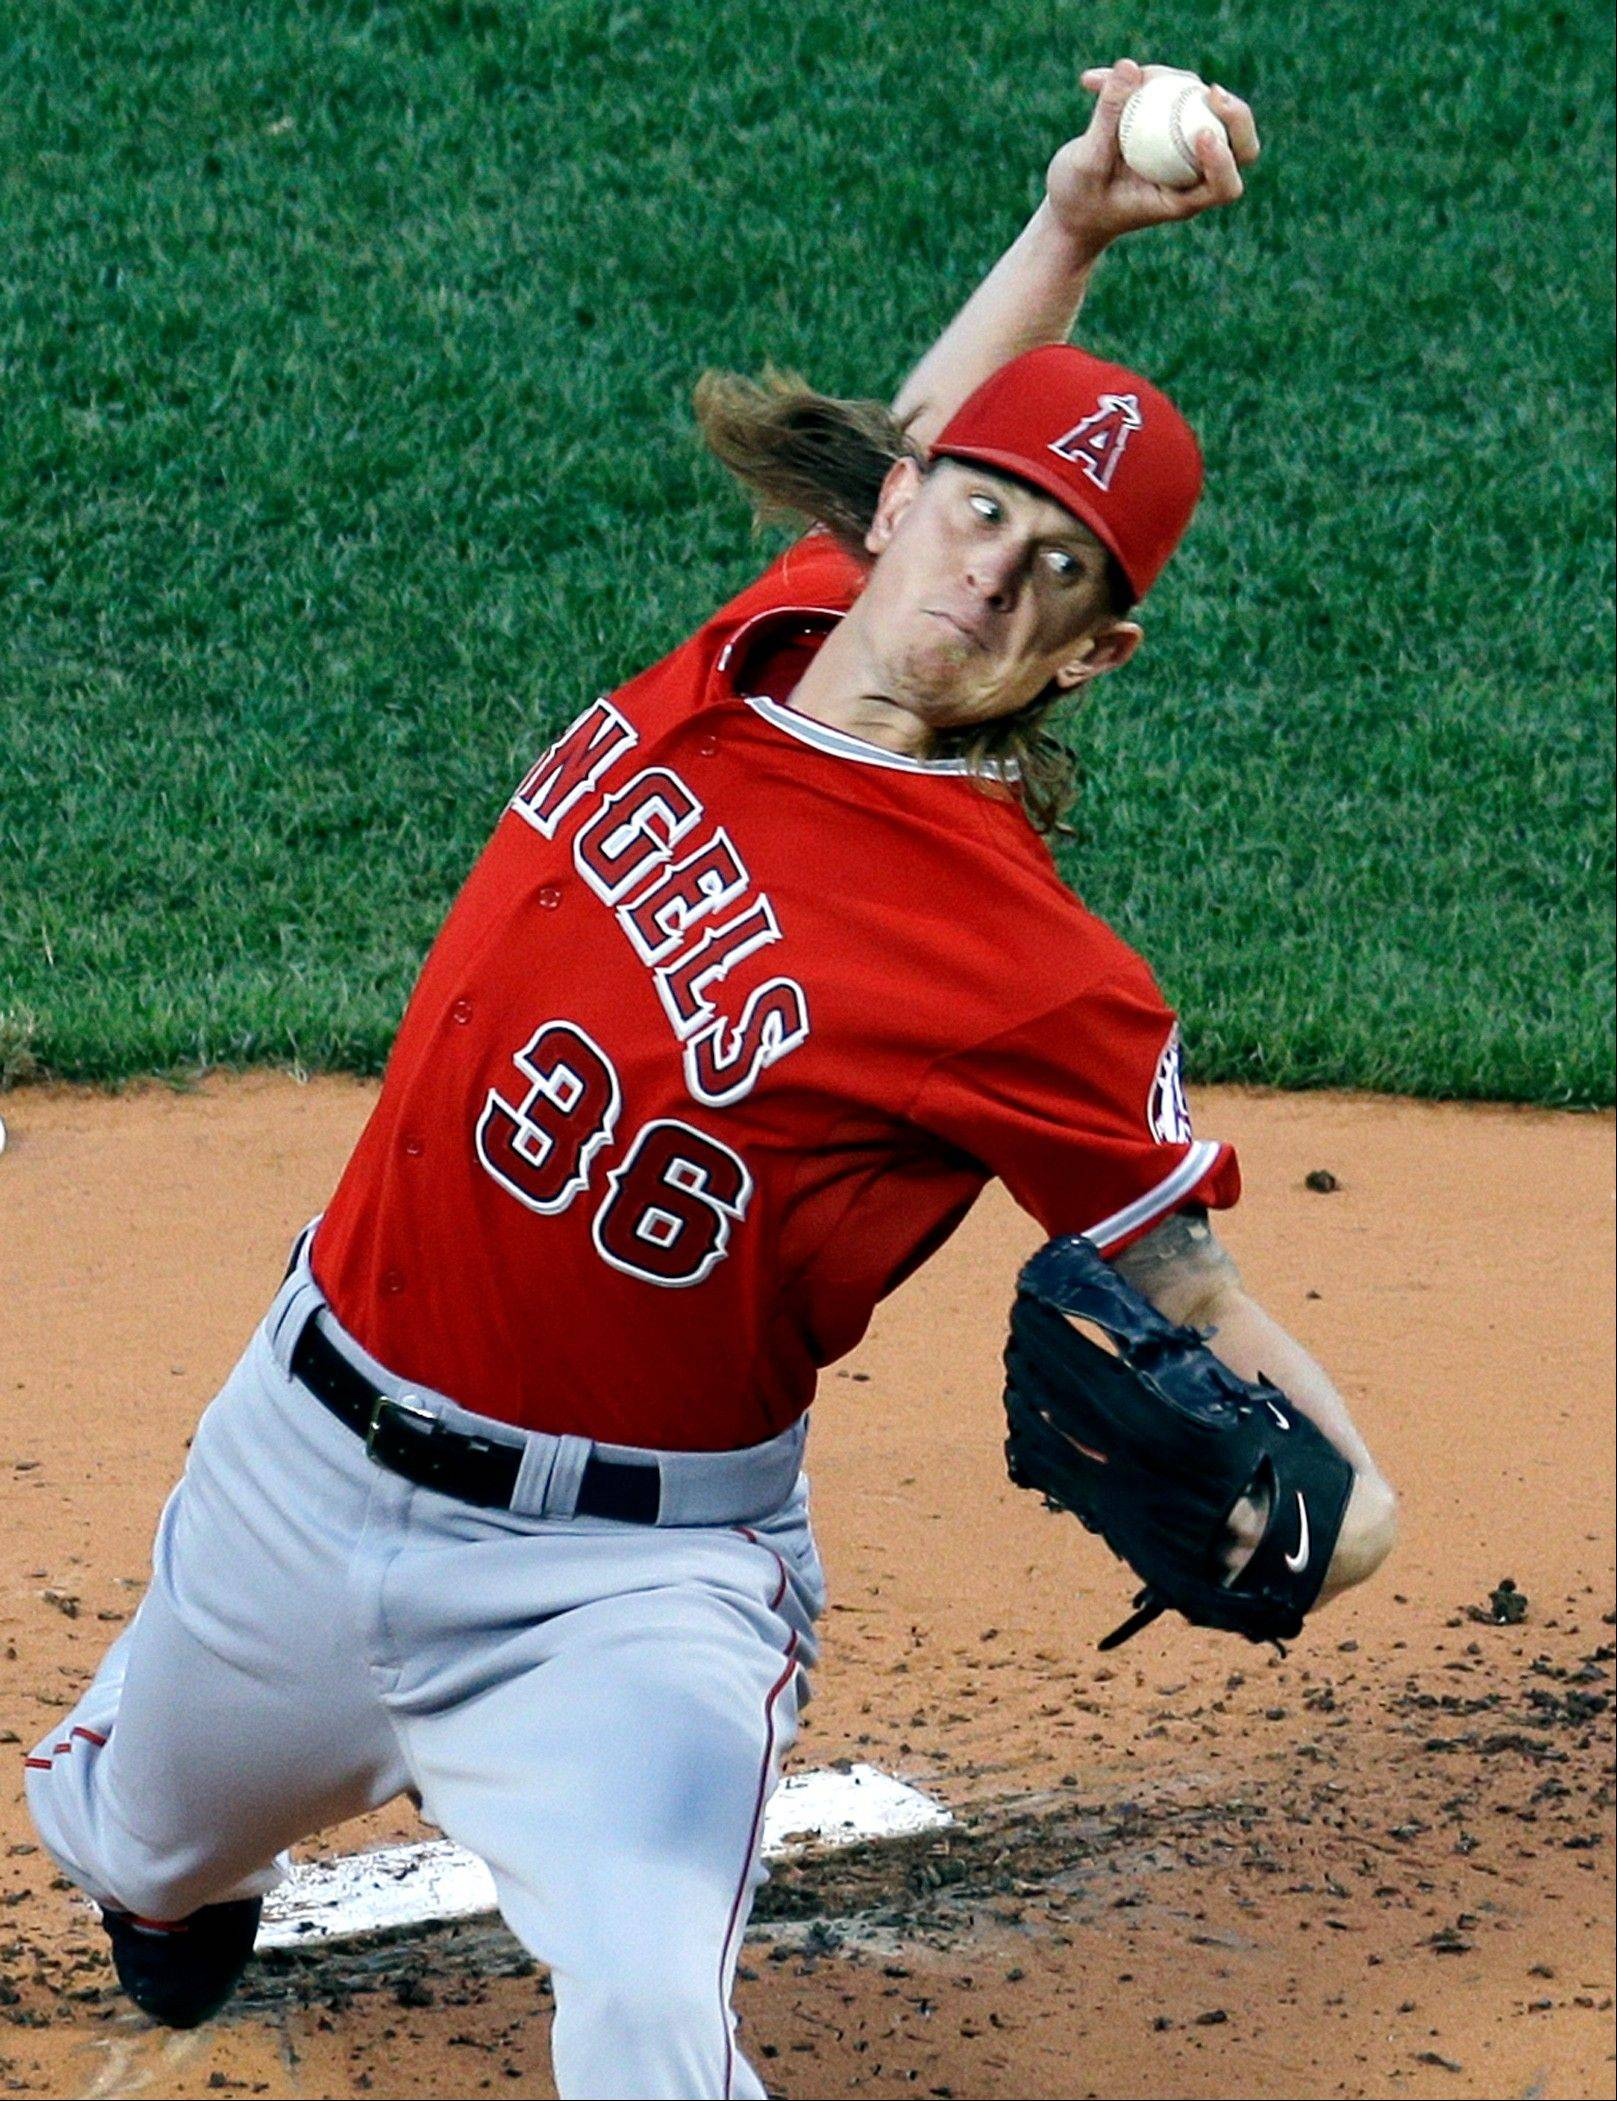 Los Angeles Angels starting pitcher Jered Weaver struck out five and walked one Wednesday in a victory in Boston.